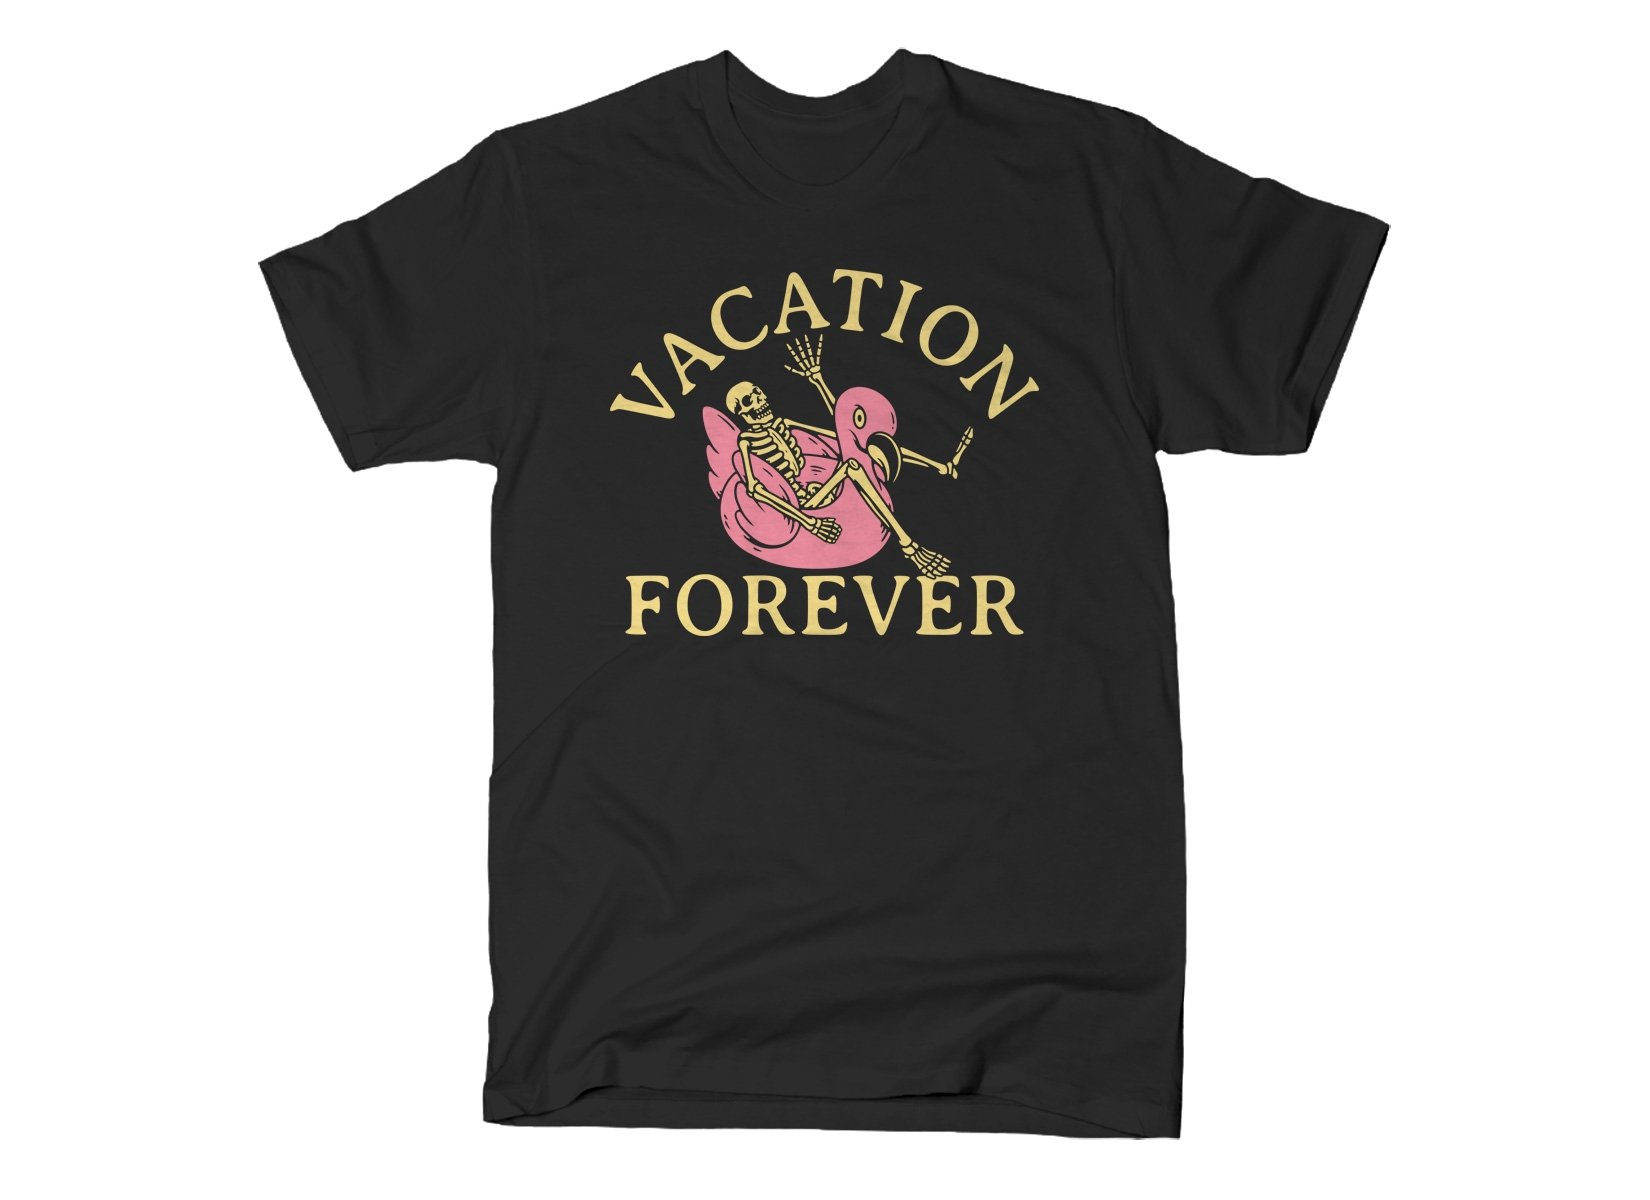 Vacation Forever on Mens T-Shirt